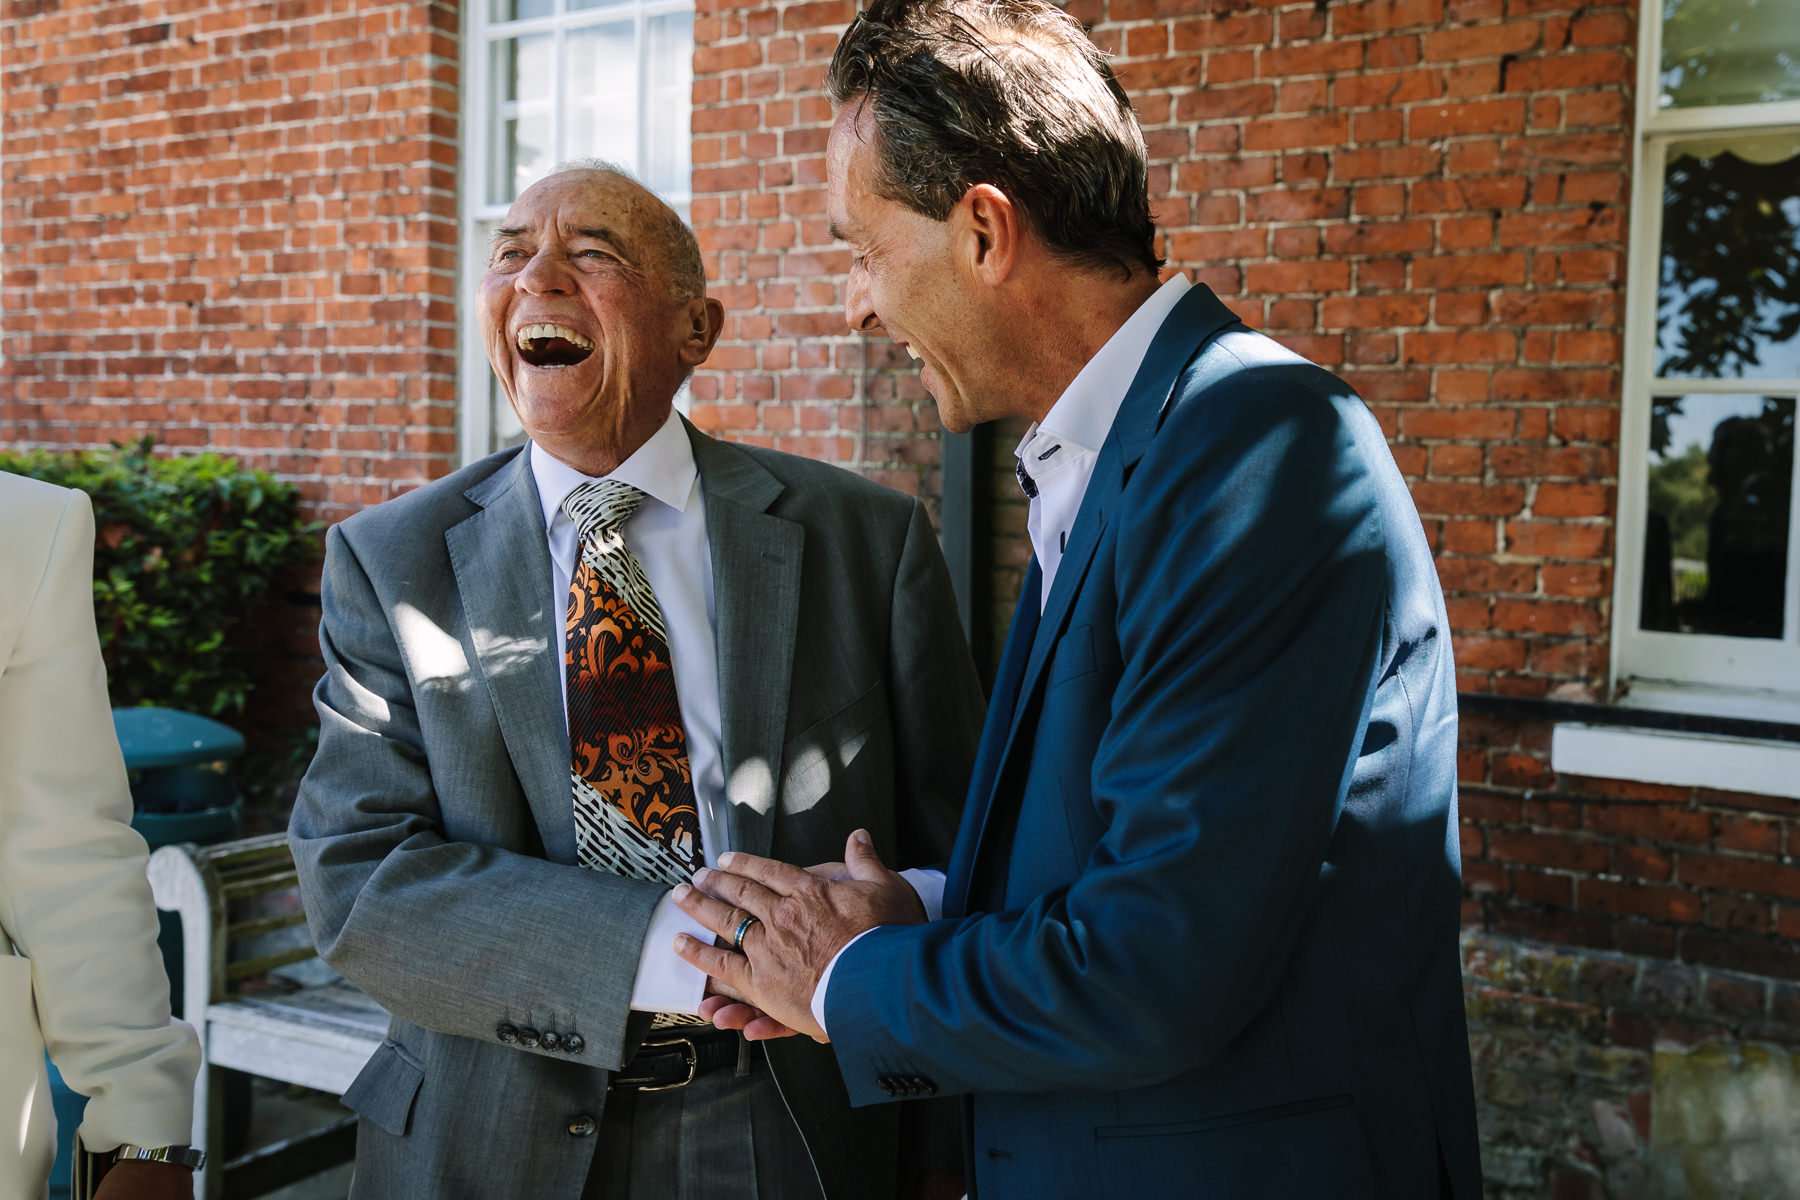 groom and father of the groom emotional happy smiling moment natural authentic documentary wedding photo bride groom couple beaverbrook surrey hills leatherhead register office wedding photographer